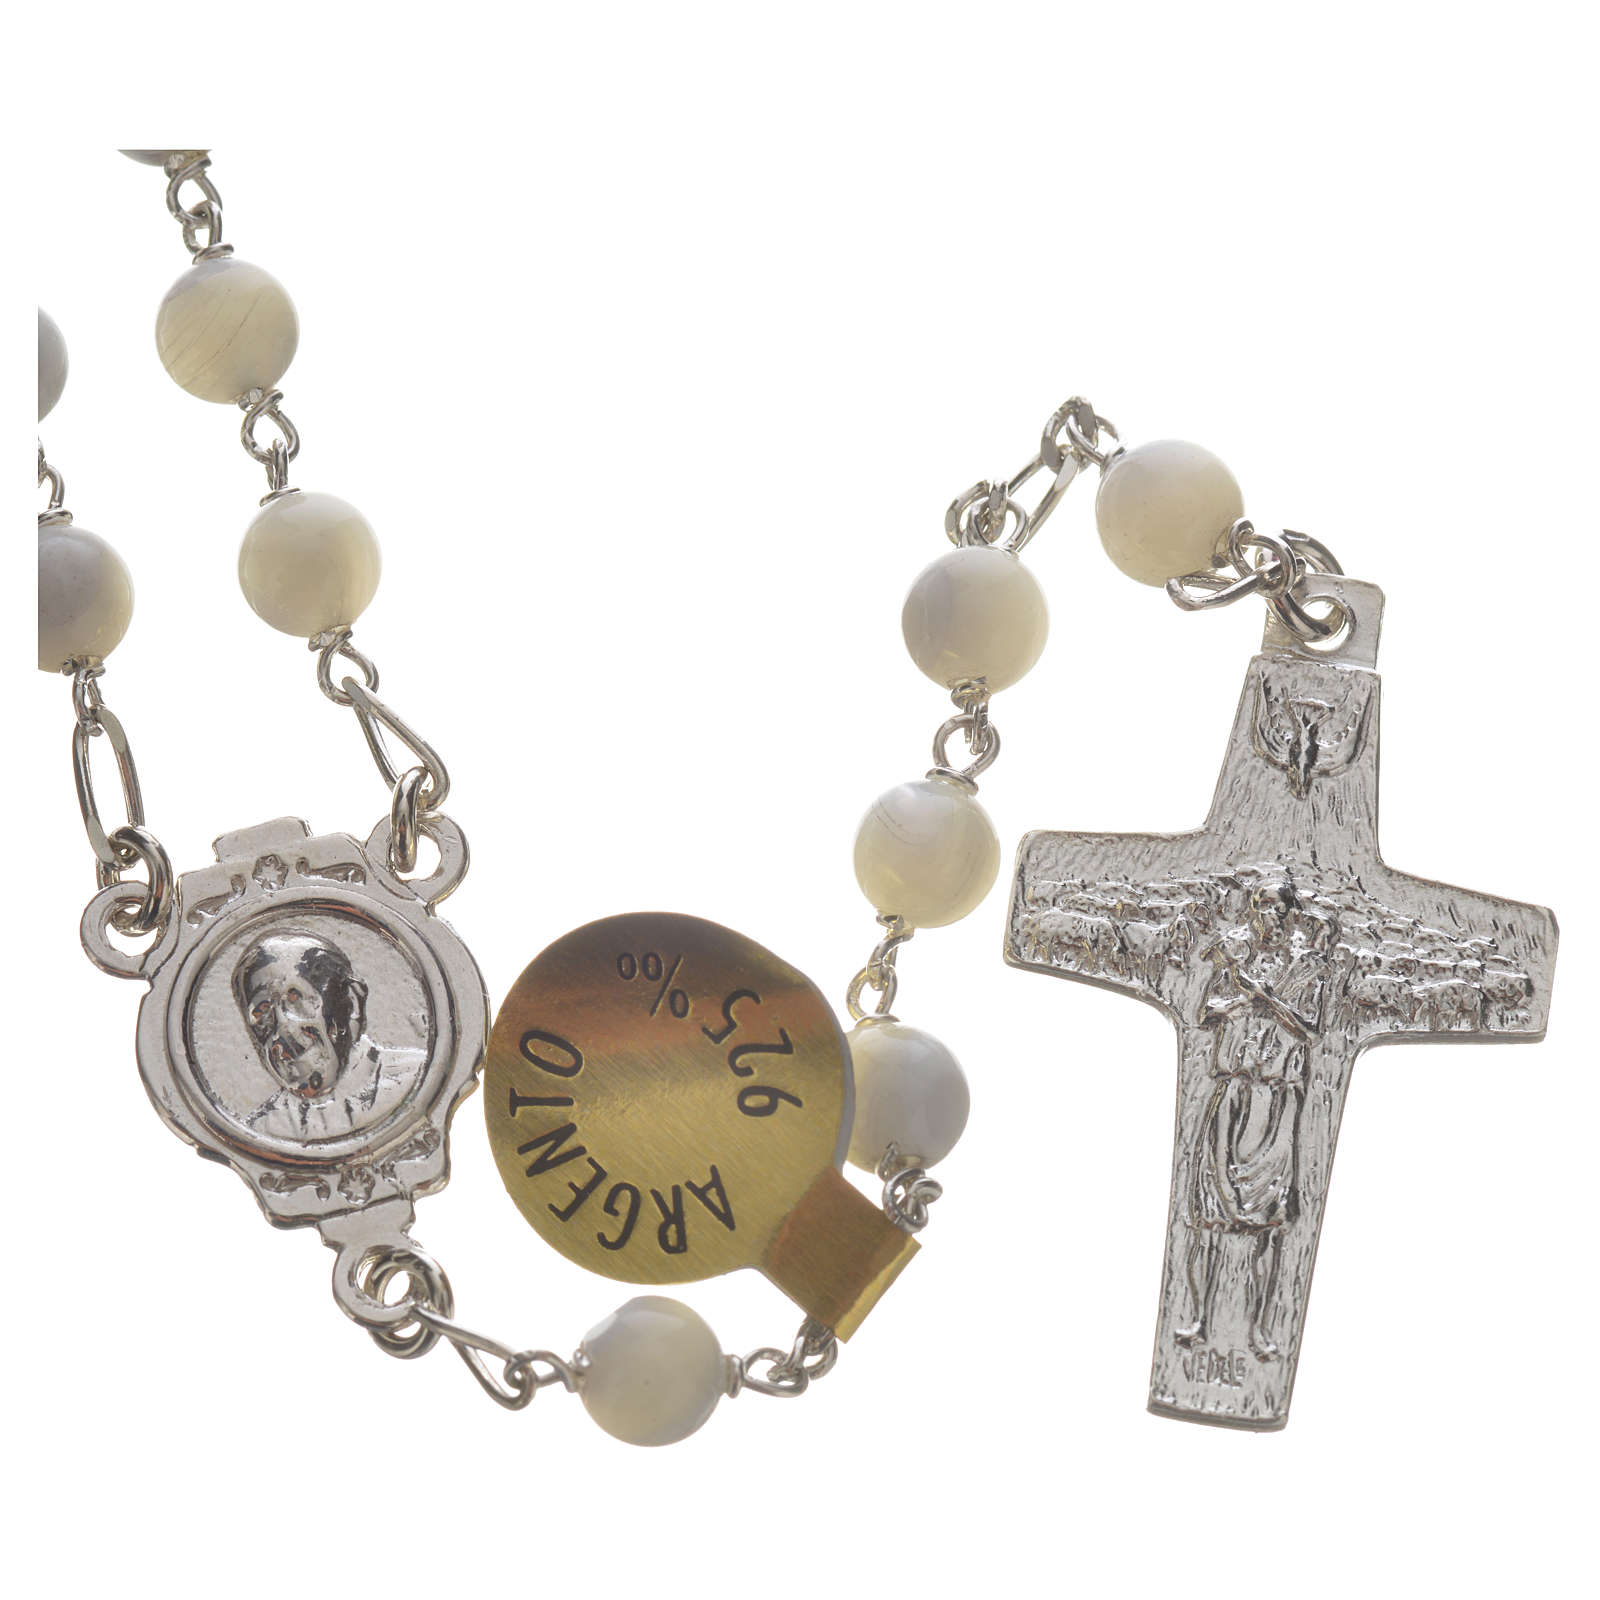 Rosary beads in sterling silver and mother-of-pearl, Pope Franci 4